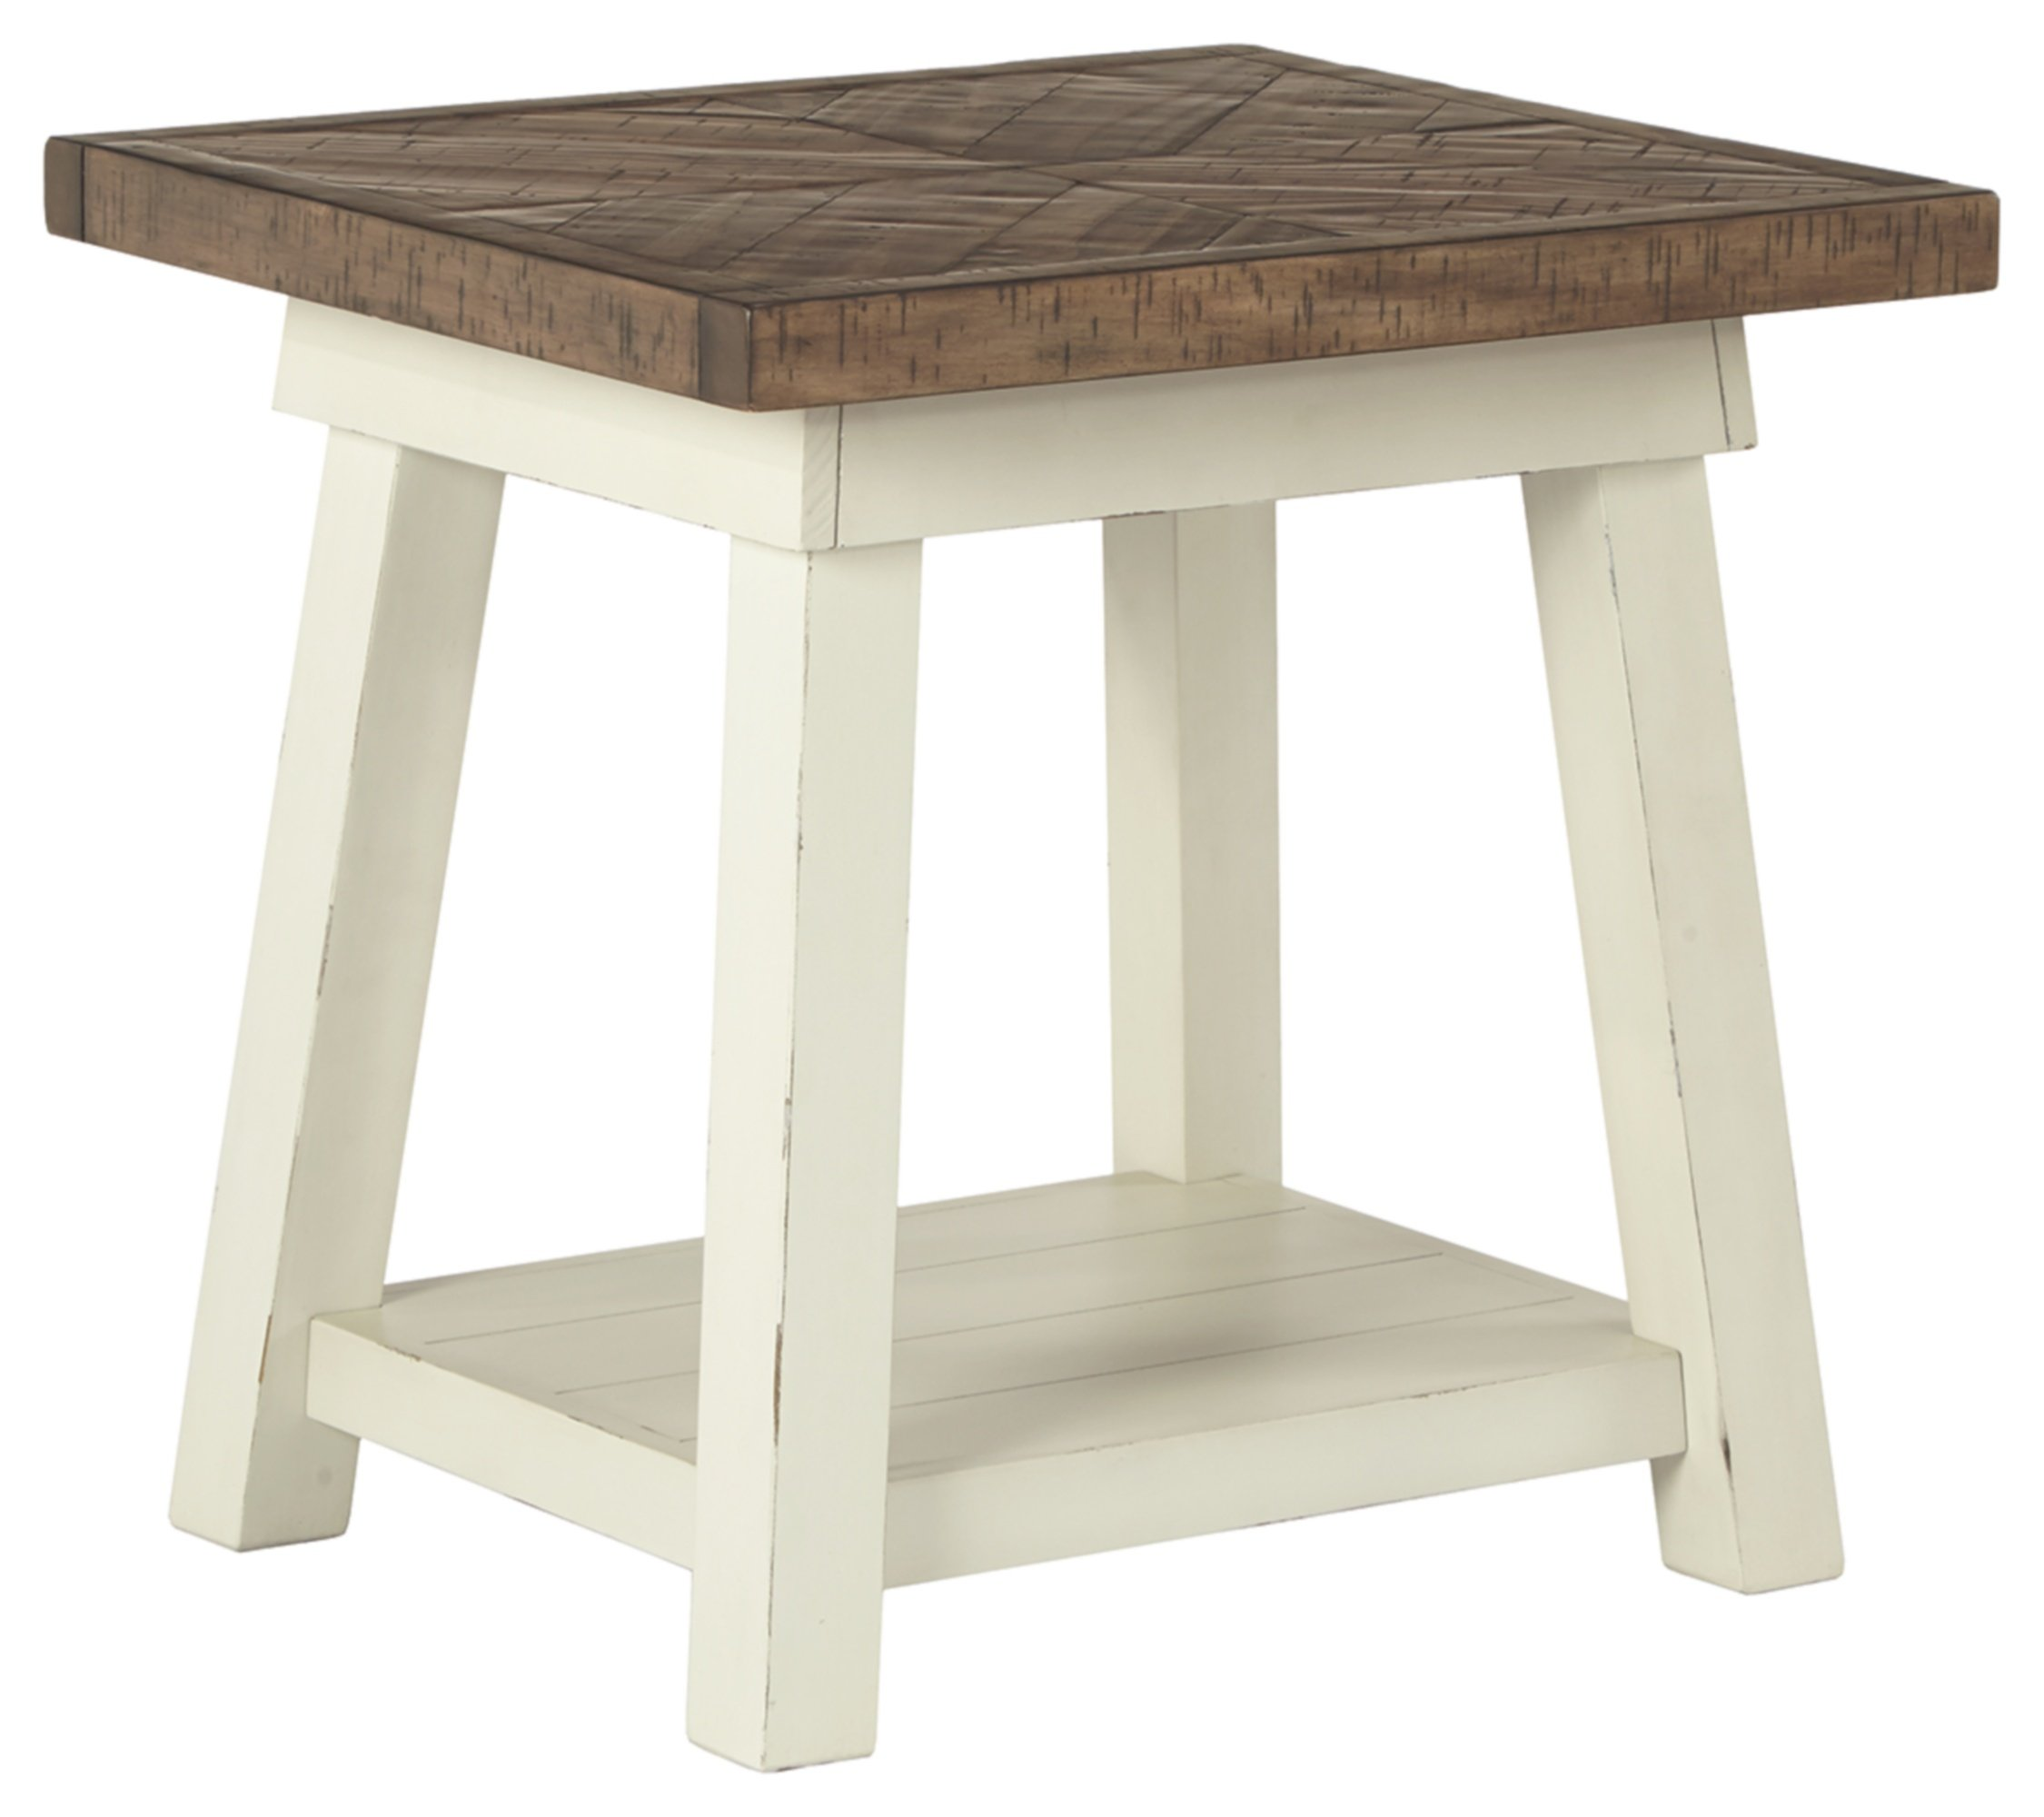 Signature Design by Ashley - Stowbranner Farmhouse Rectangular End Table, White/Brown - MODERN FARMHOUSE END TABLE: Designed with shabby-chic appeal, this small stand exudes on-trend vibes. The classic country-chic color palette and homey finishes accentuate your good taste in style HANDSOMELY CRAFTED: Made of reclaimed pine wood solids and engineered wood. Designed with a lower fixed shelf TWO-TONE FINISH: Crisp white pairs so beautifully with the natural wood finish tabletop, complete with a subtly distressed herringbone design - living-room-furniture, living-room, end-tables - 71FWX0Z 7mL -